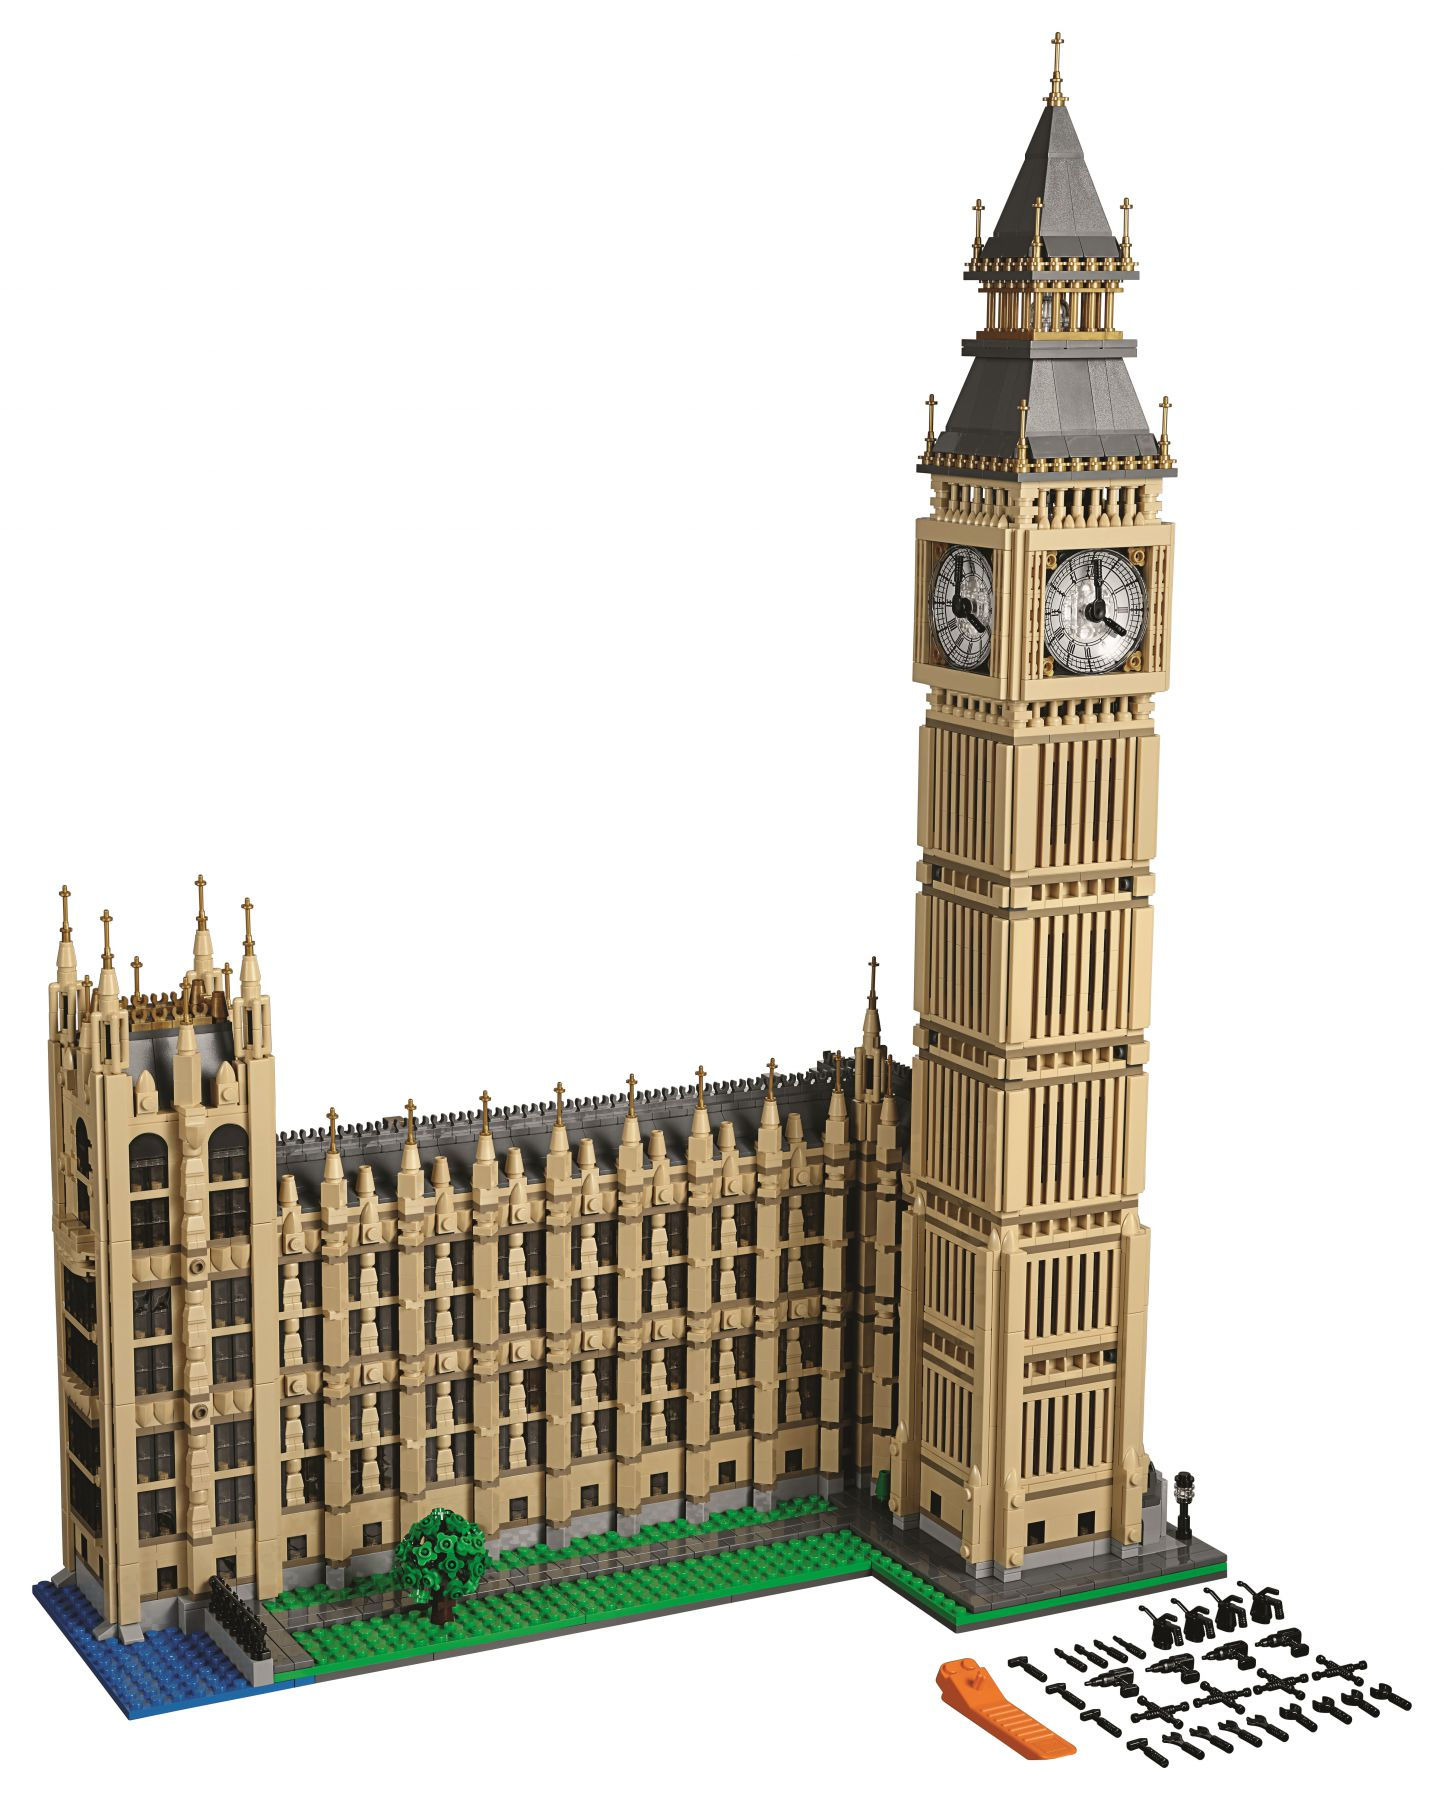 LEGO Advanced Models 10253 Big Ben